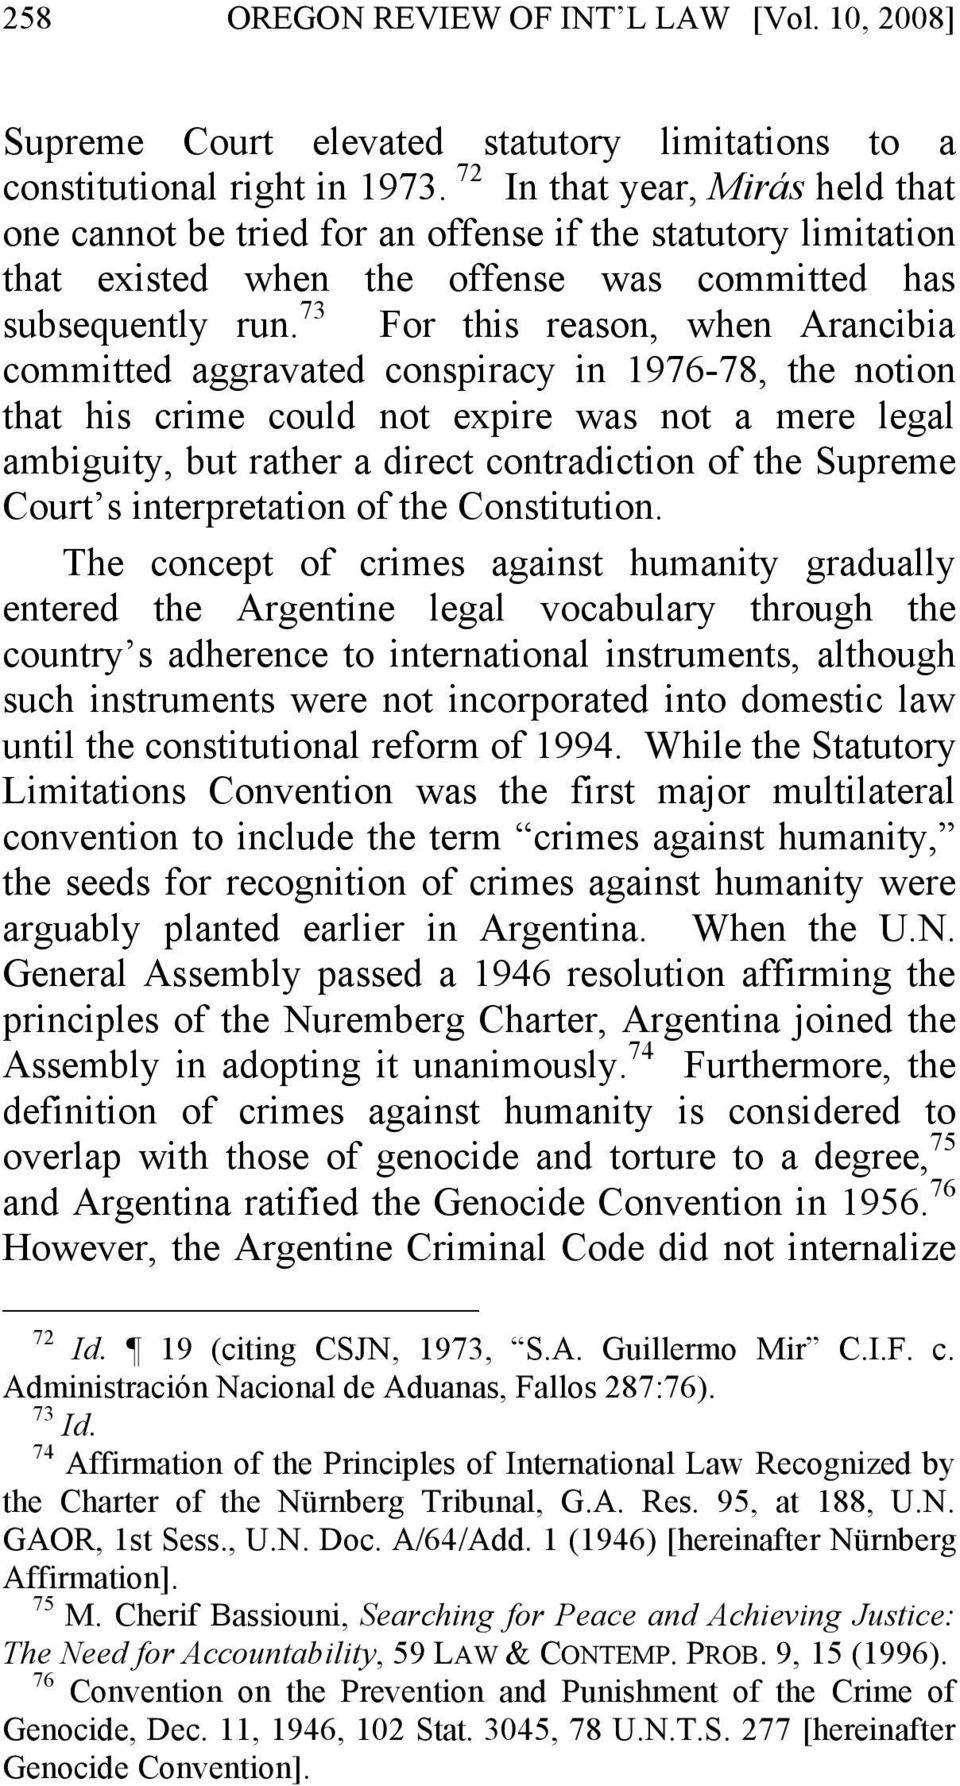 73 For this reason, when Arancibia committed aggravated conspiracy in 1976-78, the notion that his crime could not expire was not a mere legal ambiguity, but rather a direct contradiction of the